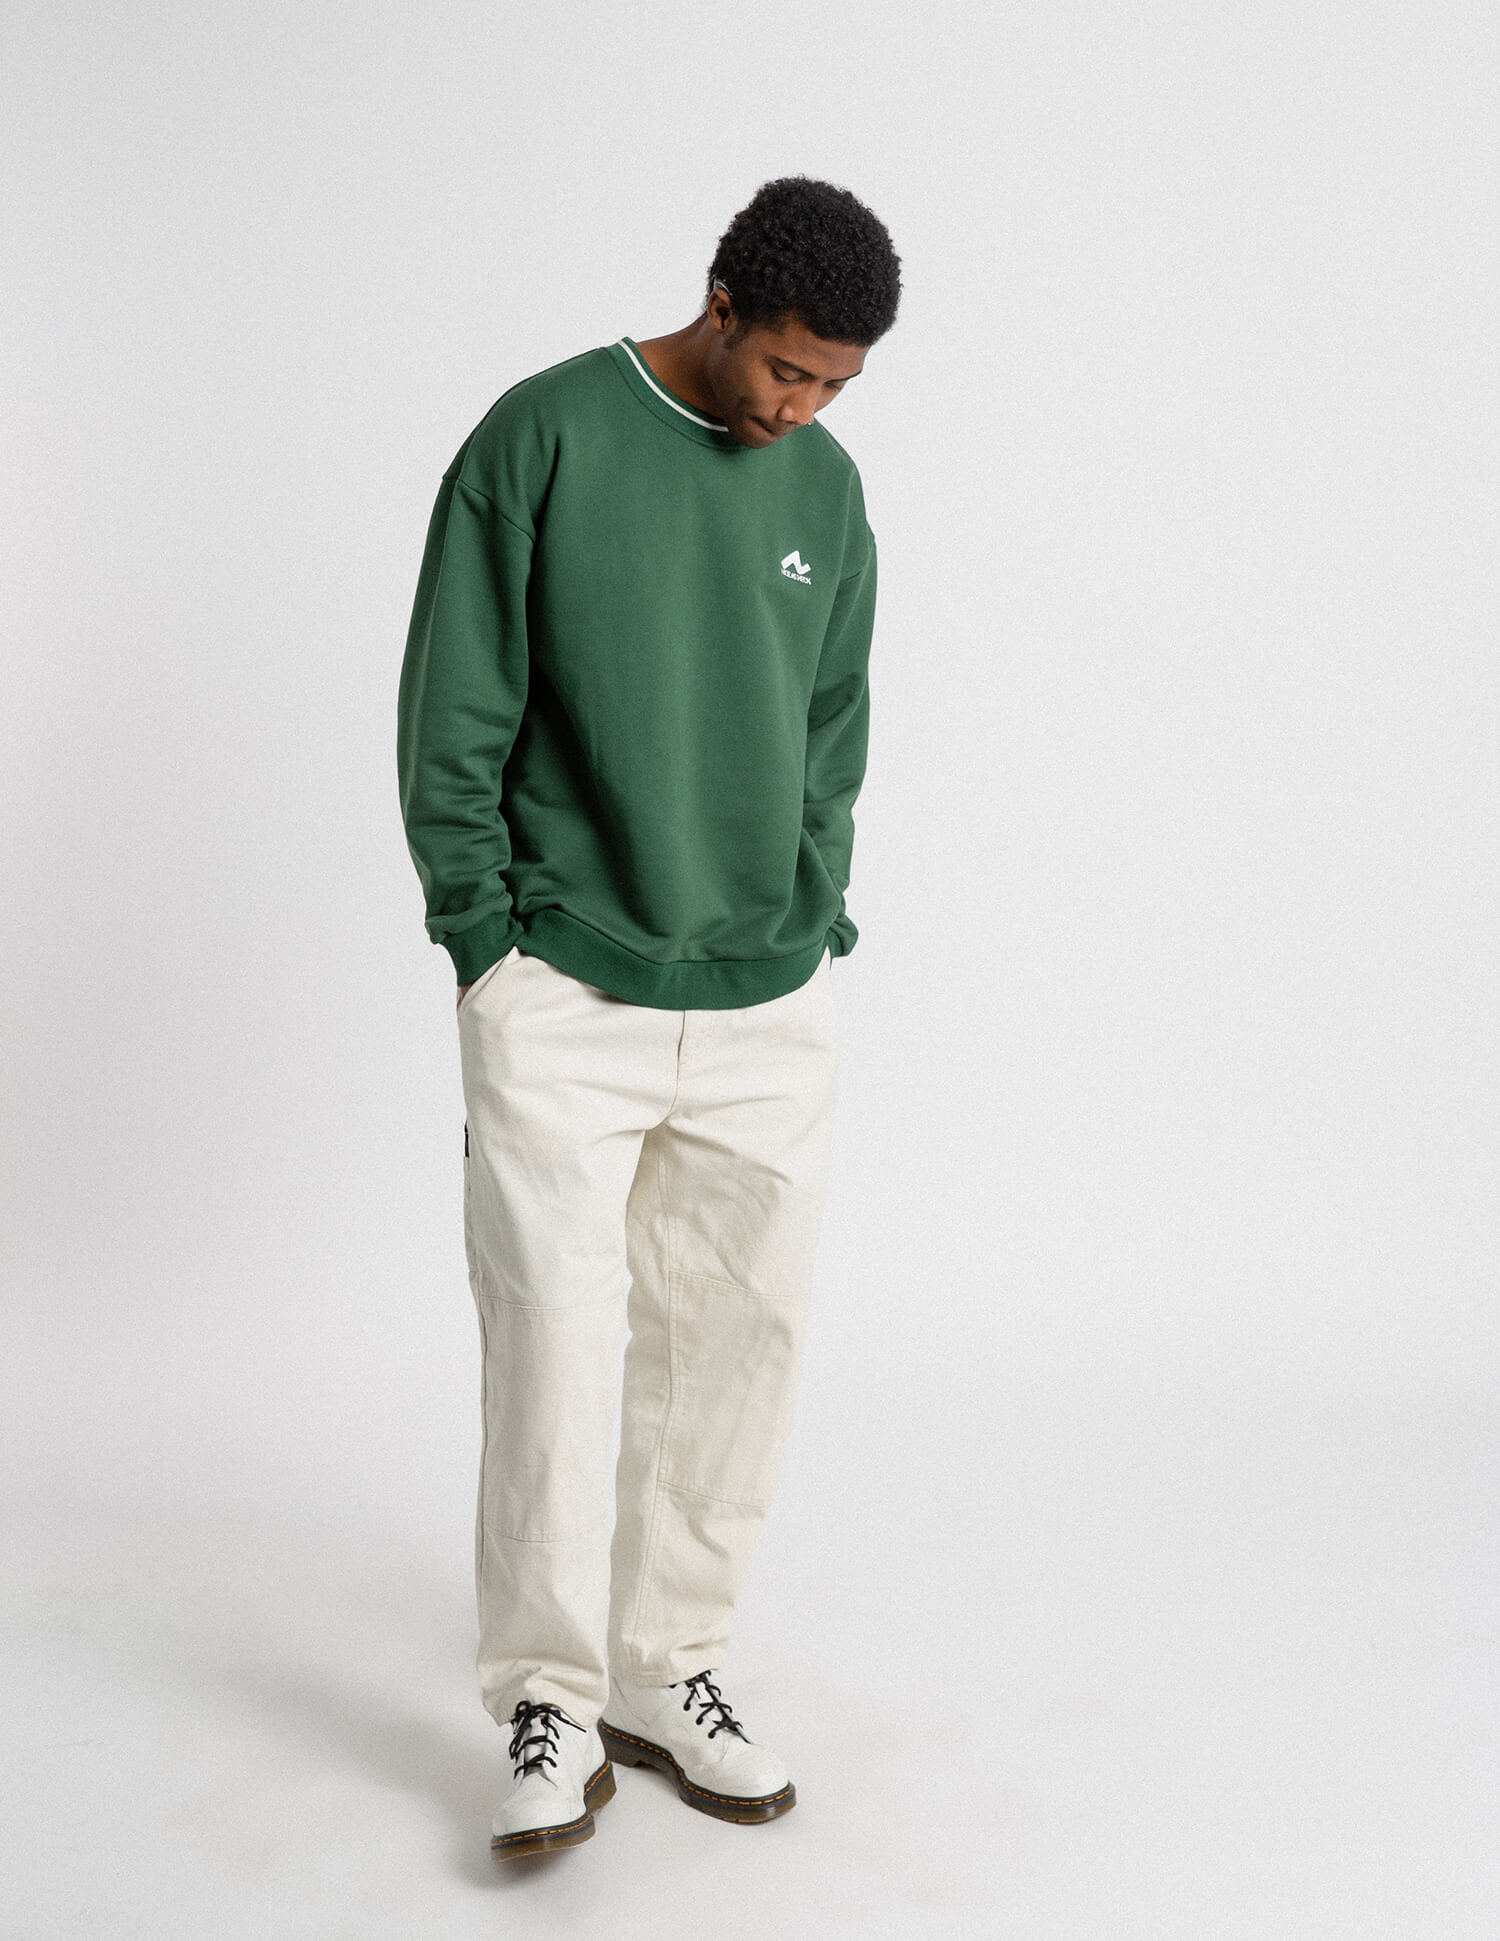 male model front view of green campfire crewneck